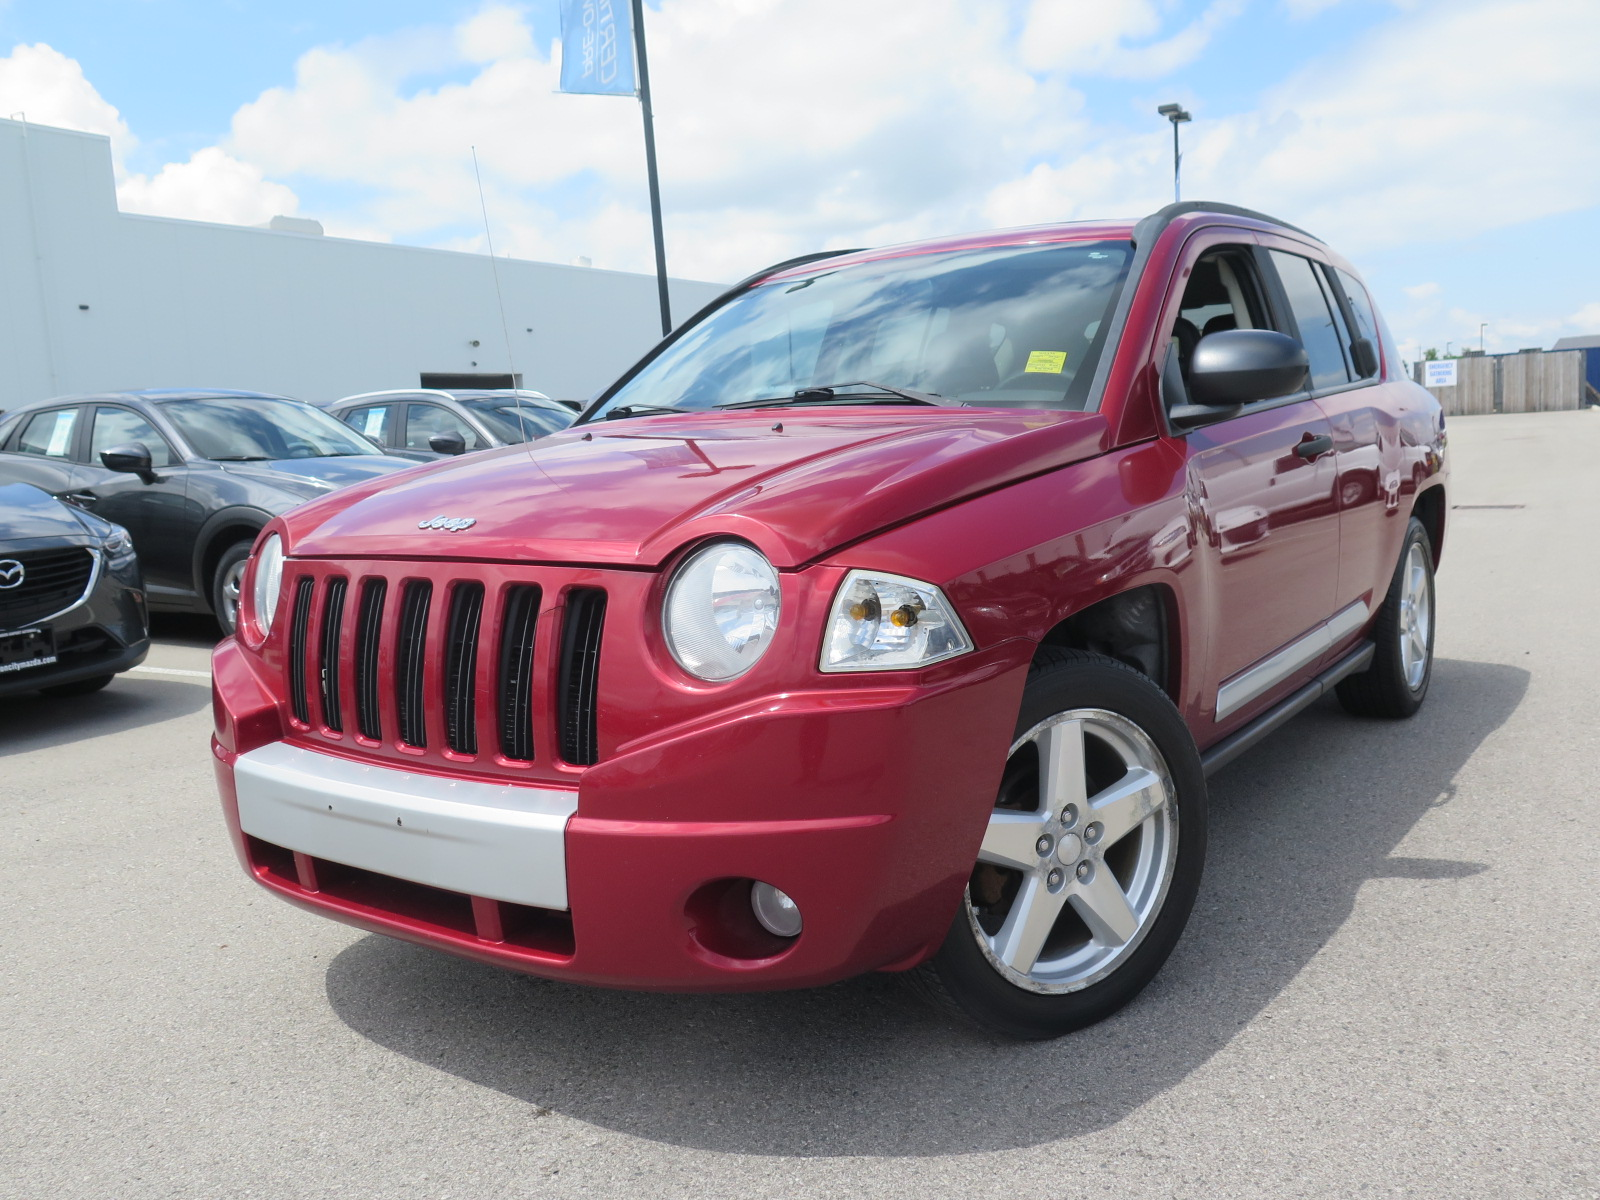 New 2007 Jeep Compass, $2997